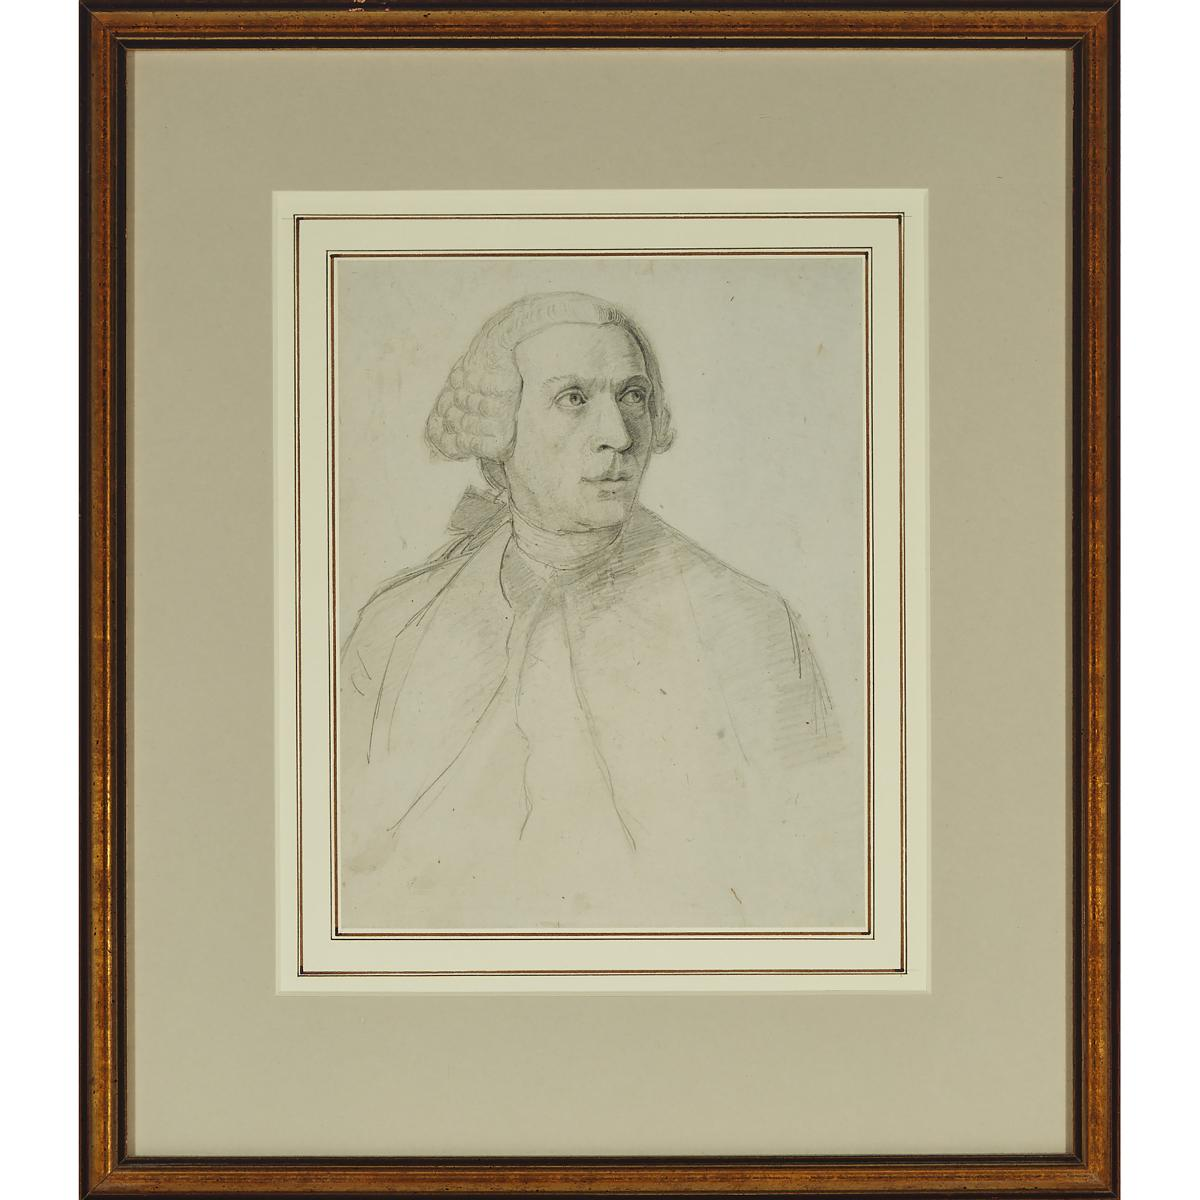 Collector's Group of Three Drawings, Sheet 8.25 x 6.5 in — 21 x 16.5 cm; 5.5 x 8.5 in — 14 x 21.6 cm - Image 2 of 9